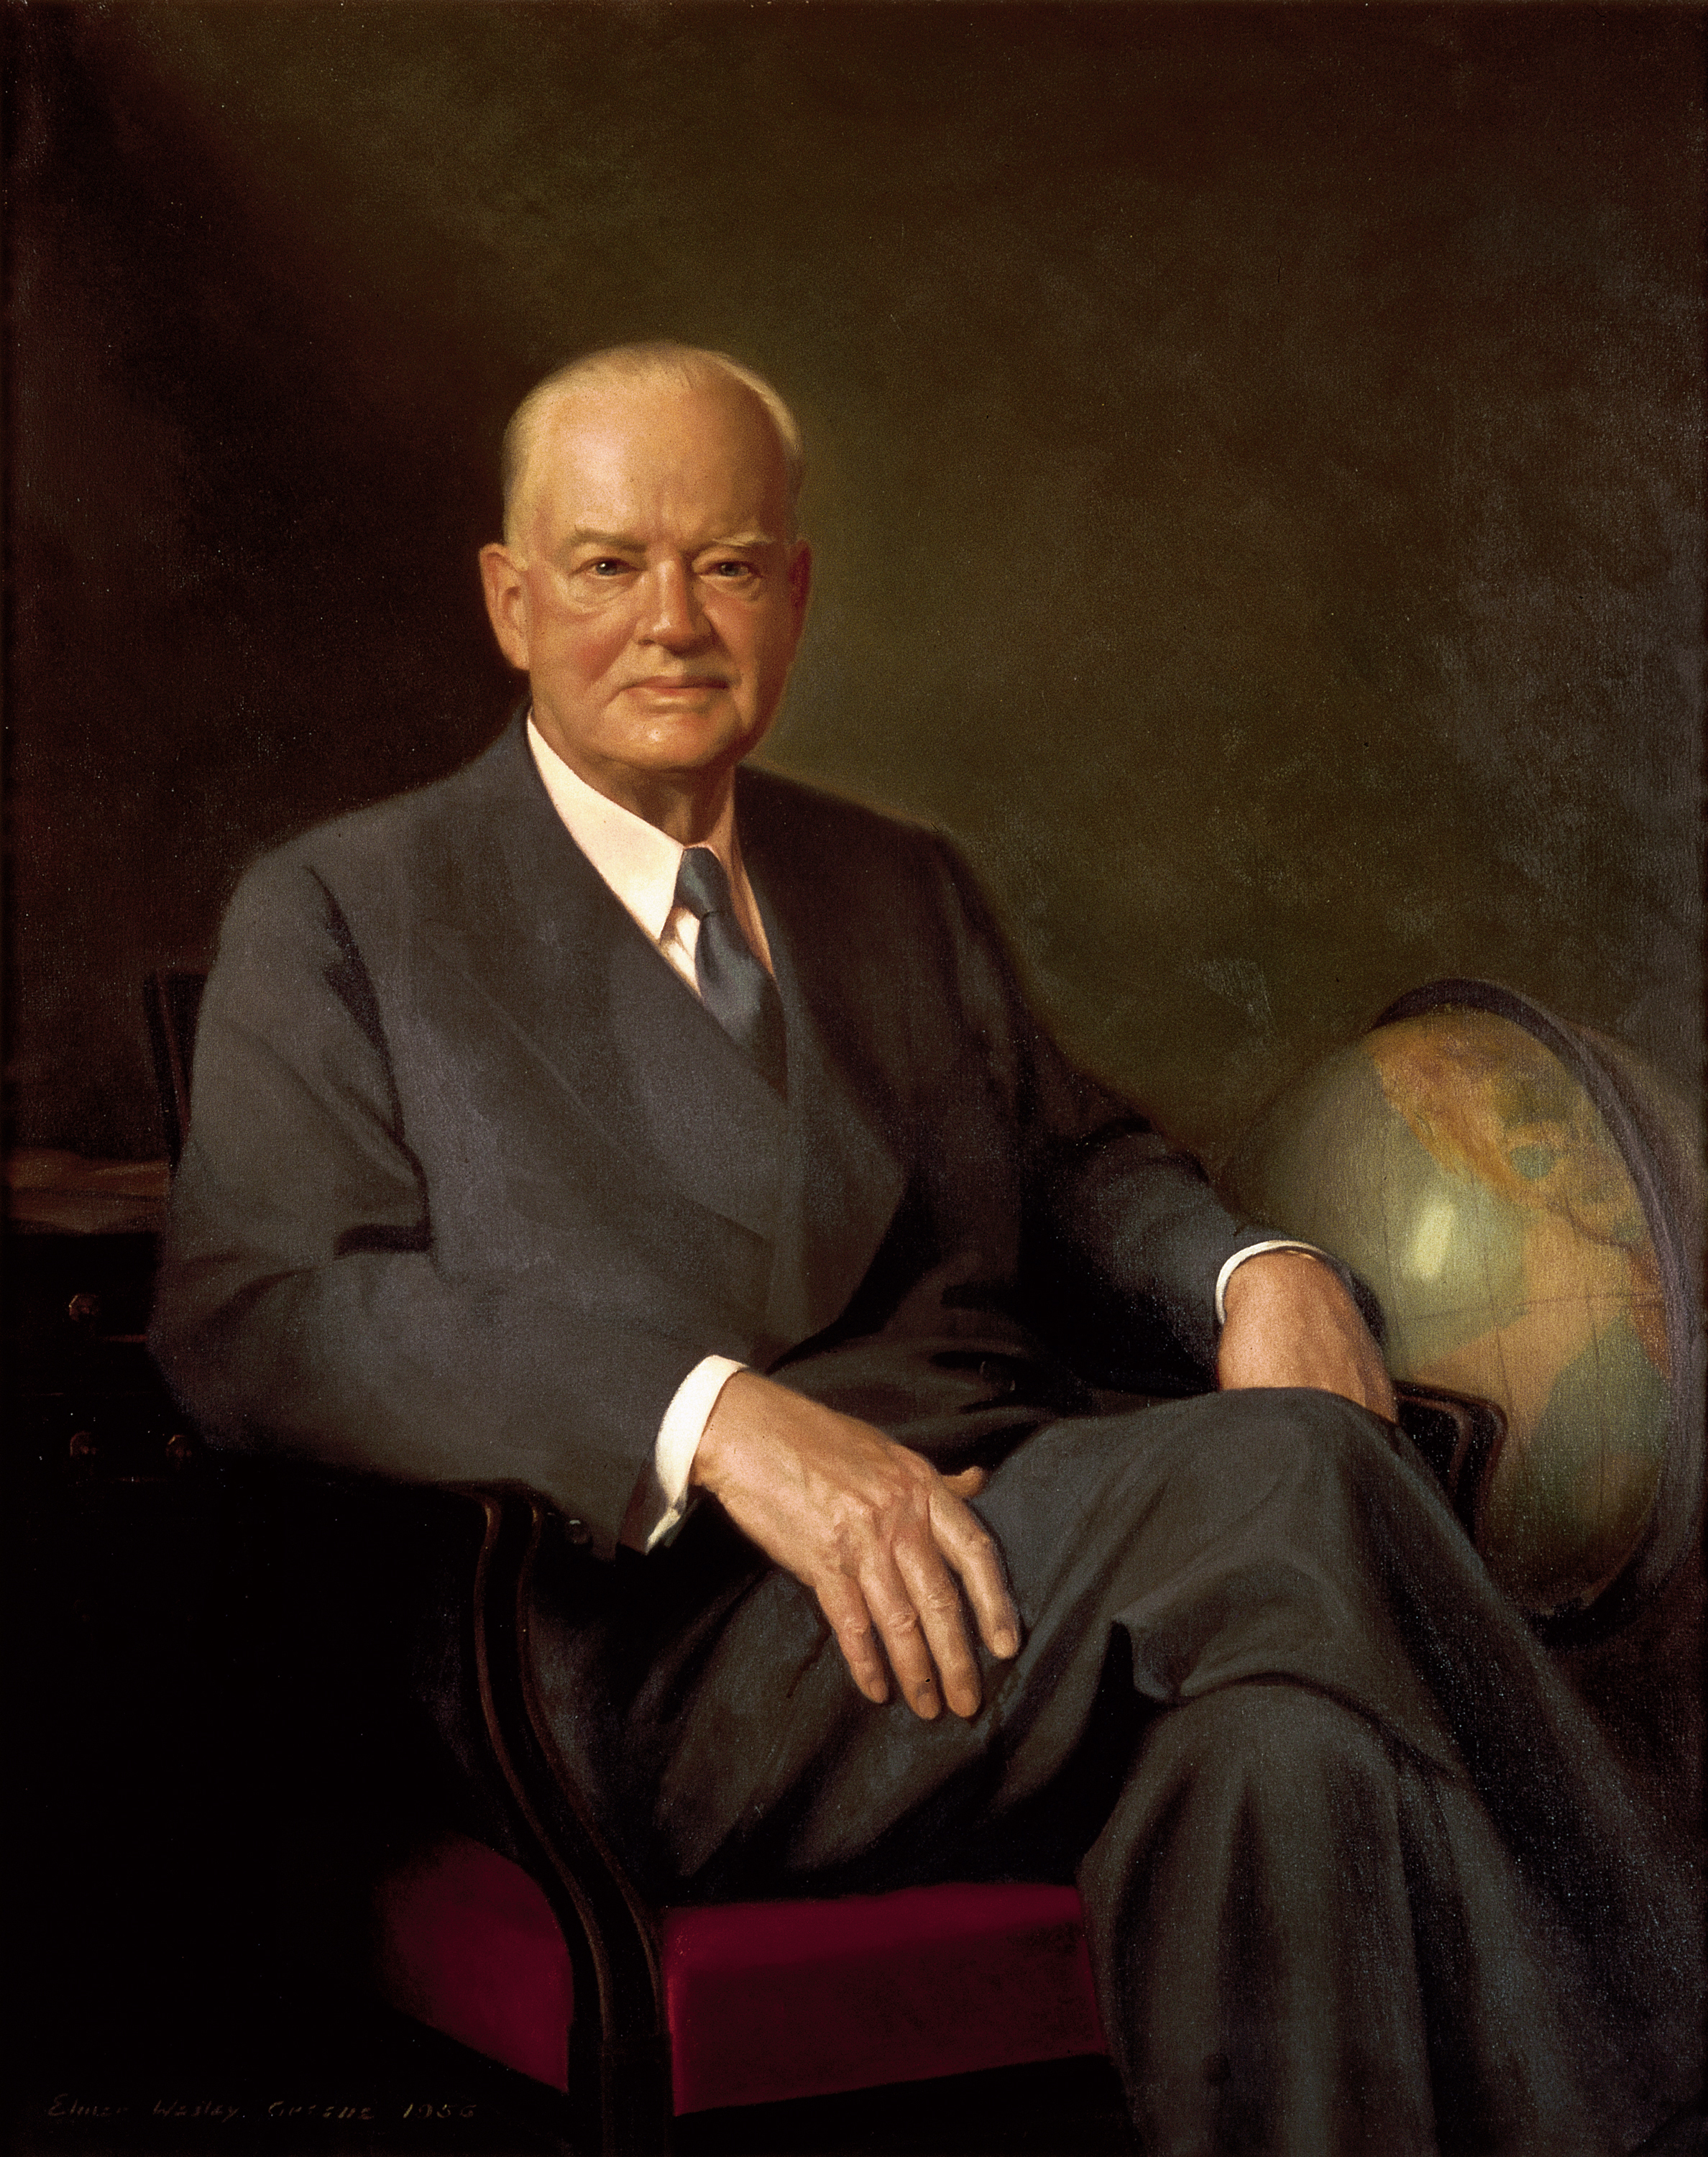 account of the life and presidency of herbert hoover President herbert hoover worked extremely hard, sometimes putting in eighteen-hour days at the office hoover usually awoke at 6 am and exercised with a medicine ball, along with select members of his cabinet and staff, supreme court justices, and invited congressmen after his workout, hoover .